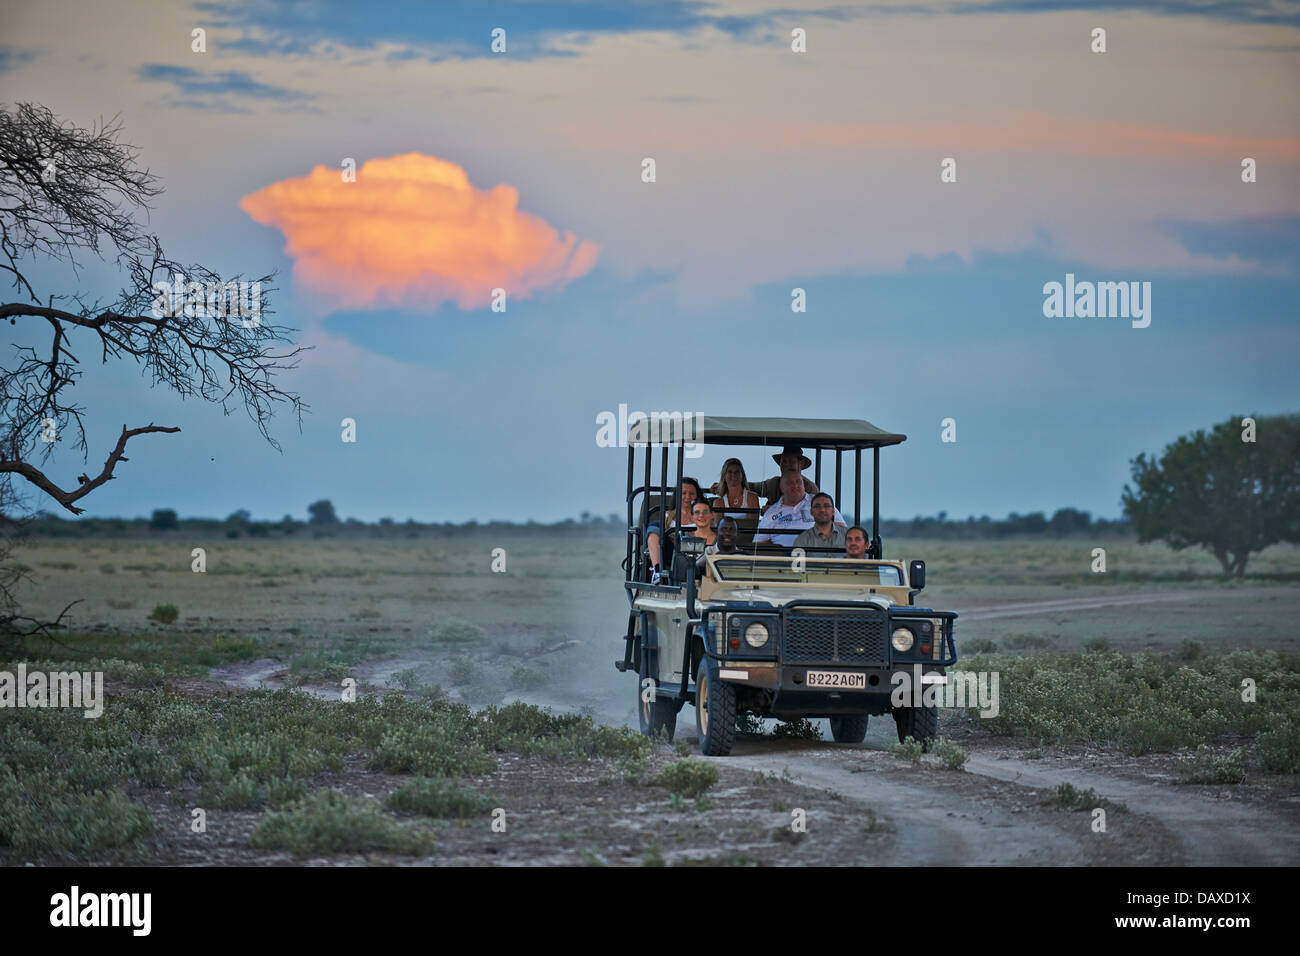 4x4 safari car with tourists and guide during sunset in Central Kalahari Game Reserve, Botswana, Africa - Stock Image